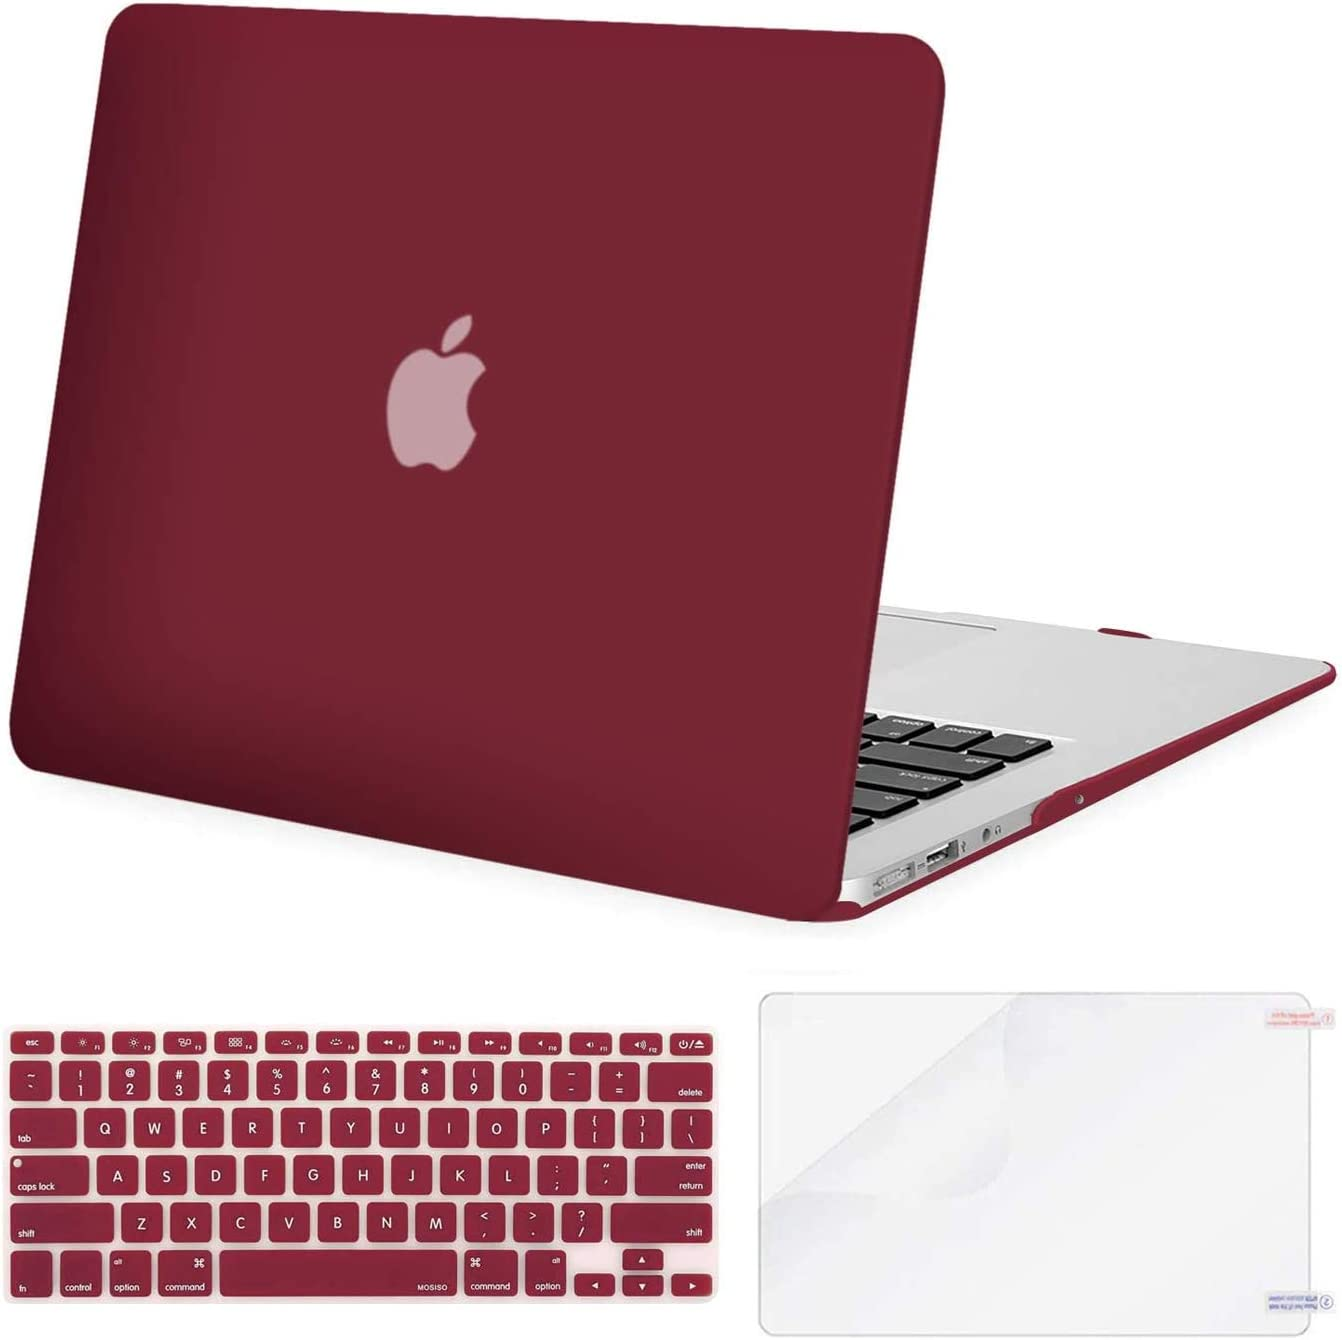 MOSISO Plastic Hard Shell Case & Keyboard Cover Skin & Screen Protector Only Compatible with MacBook Air 11 inch (Models: A1370 & A1465), Wine Red